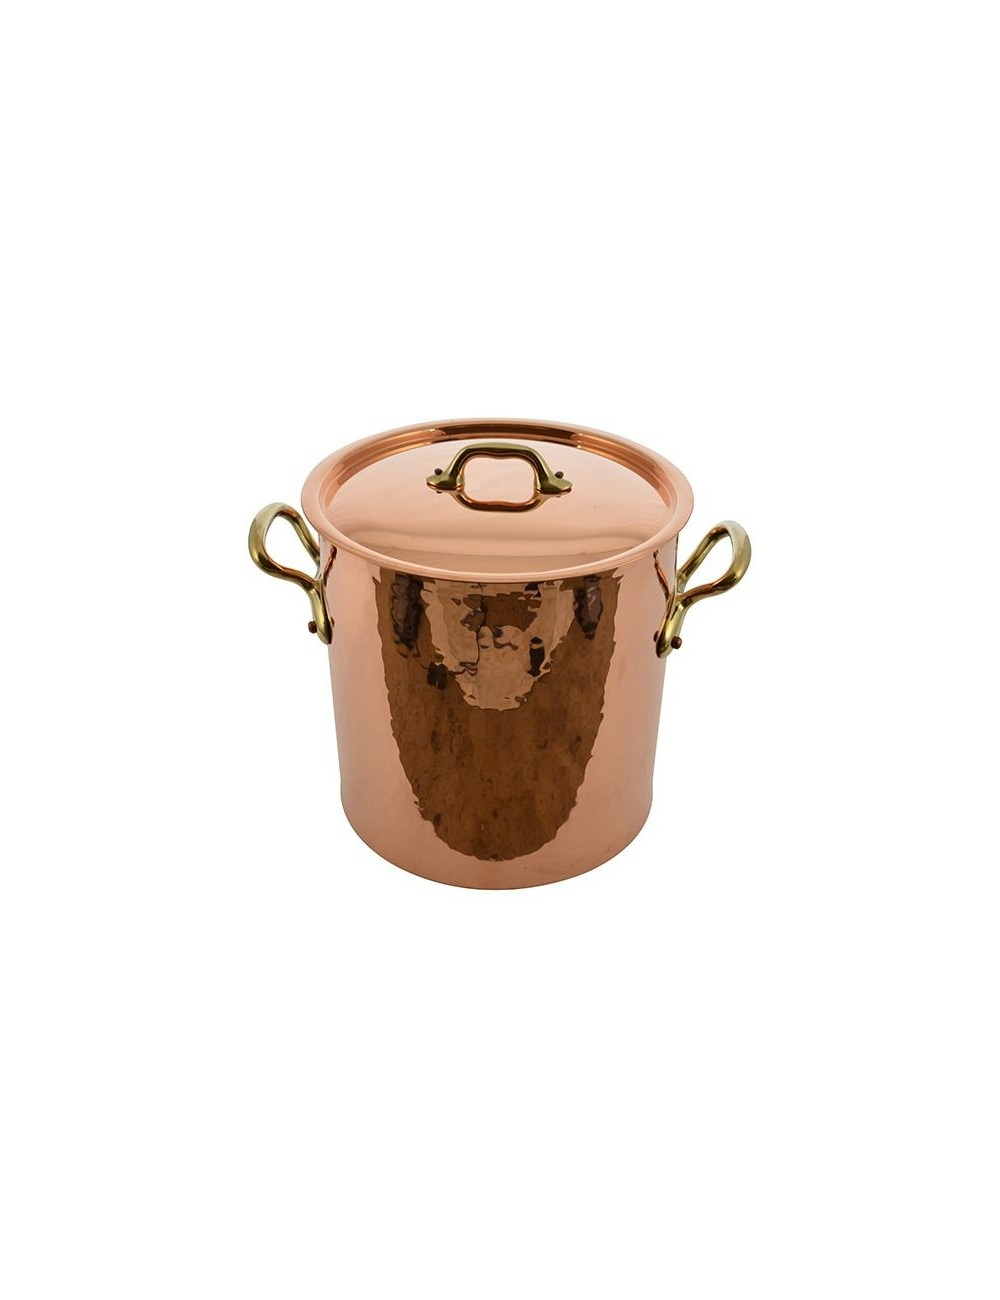 STOCK POT WITH LID IN COPPER TIN